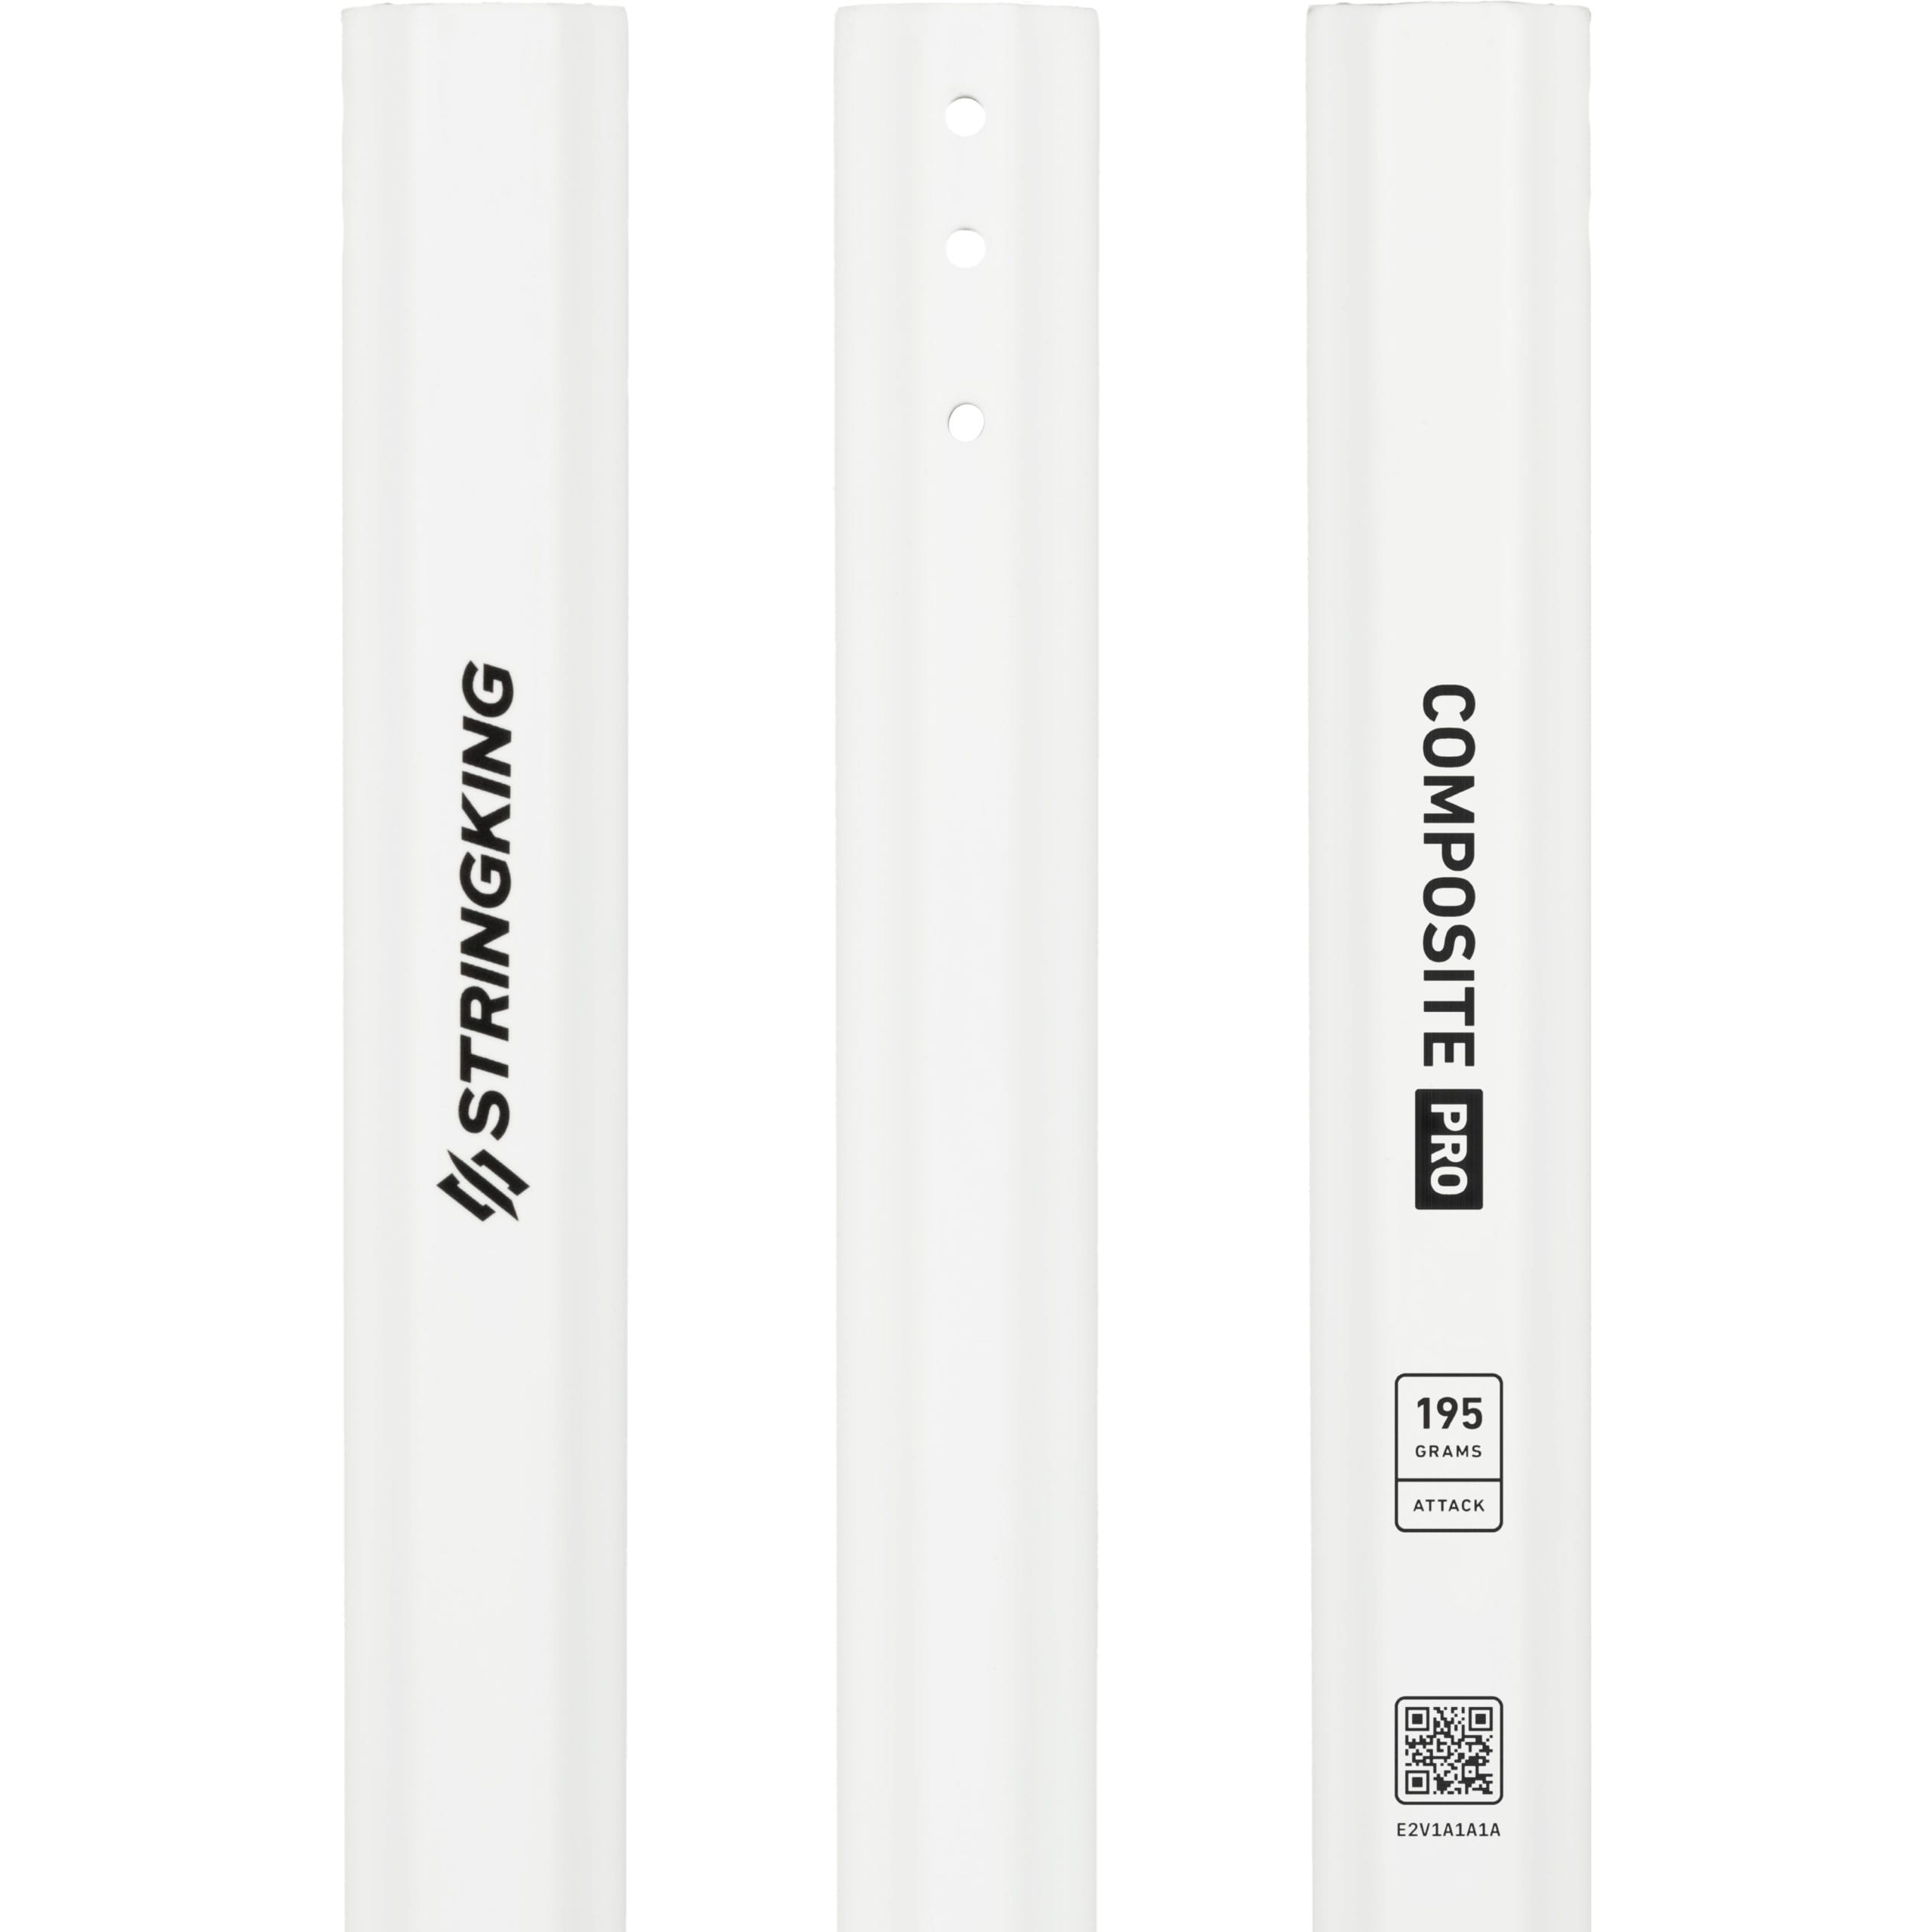 StringKing-Mens-Composite-Pro-195-Attack-Lacrosse-Shaft-White-Triple-View-scaled-1.jpg